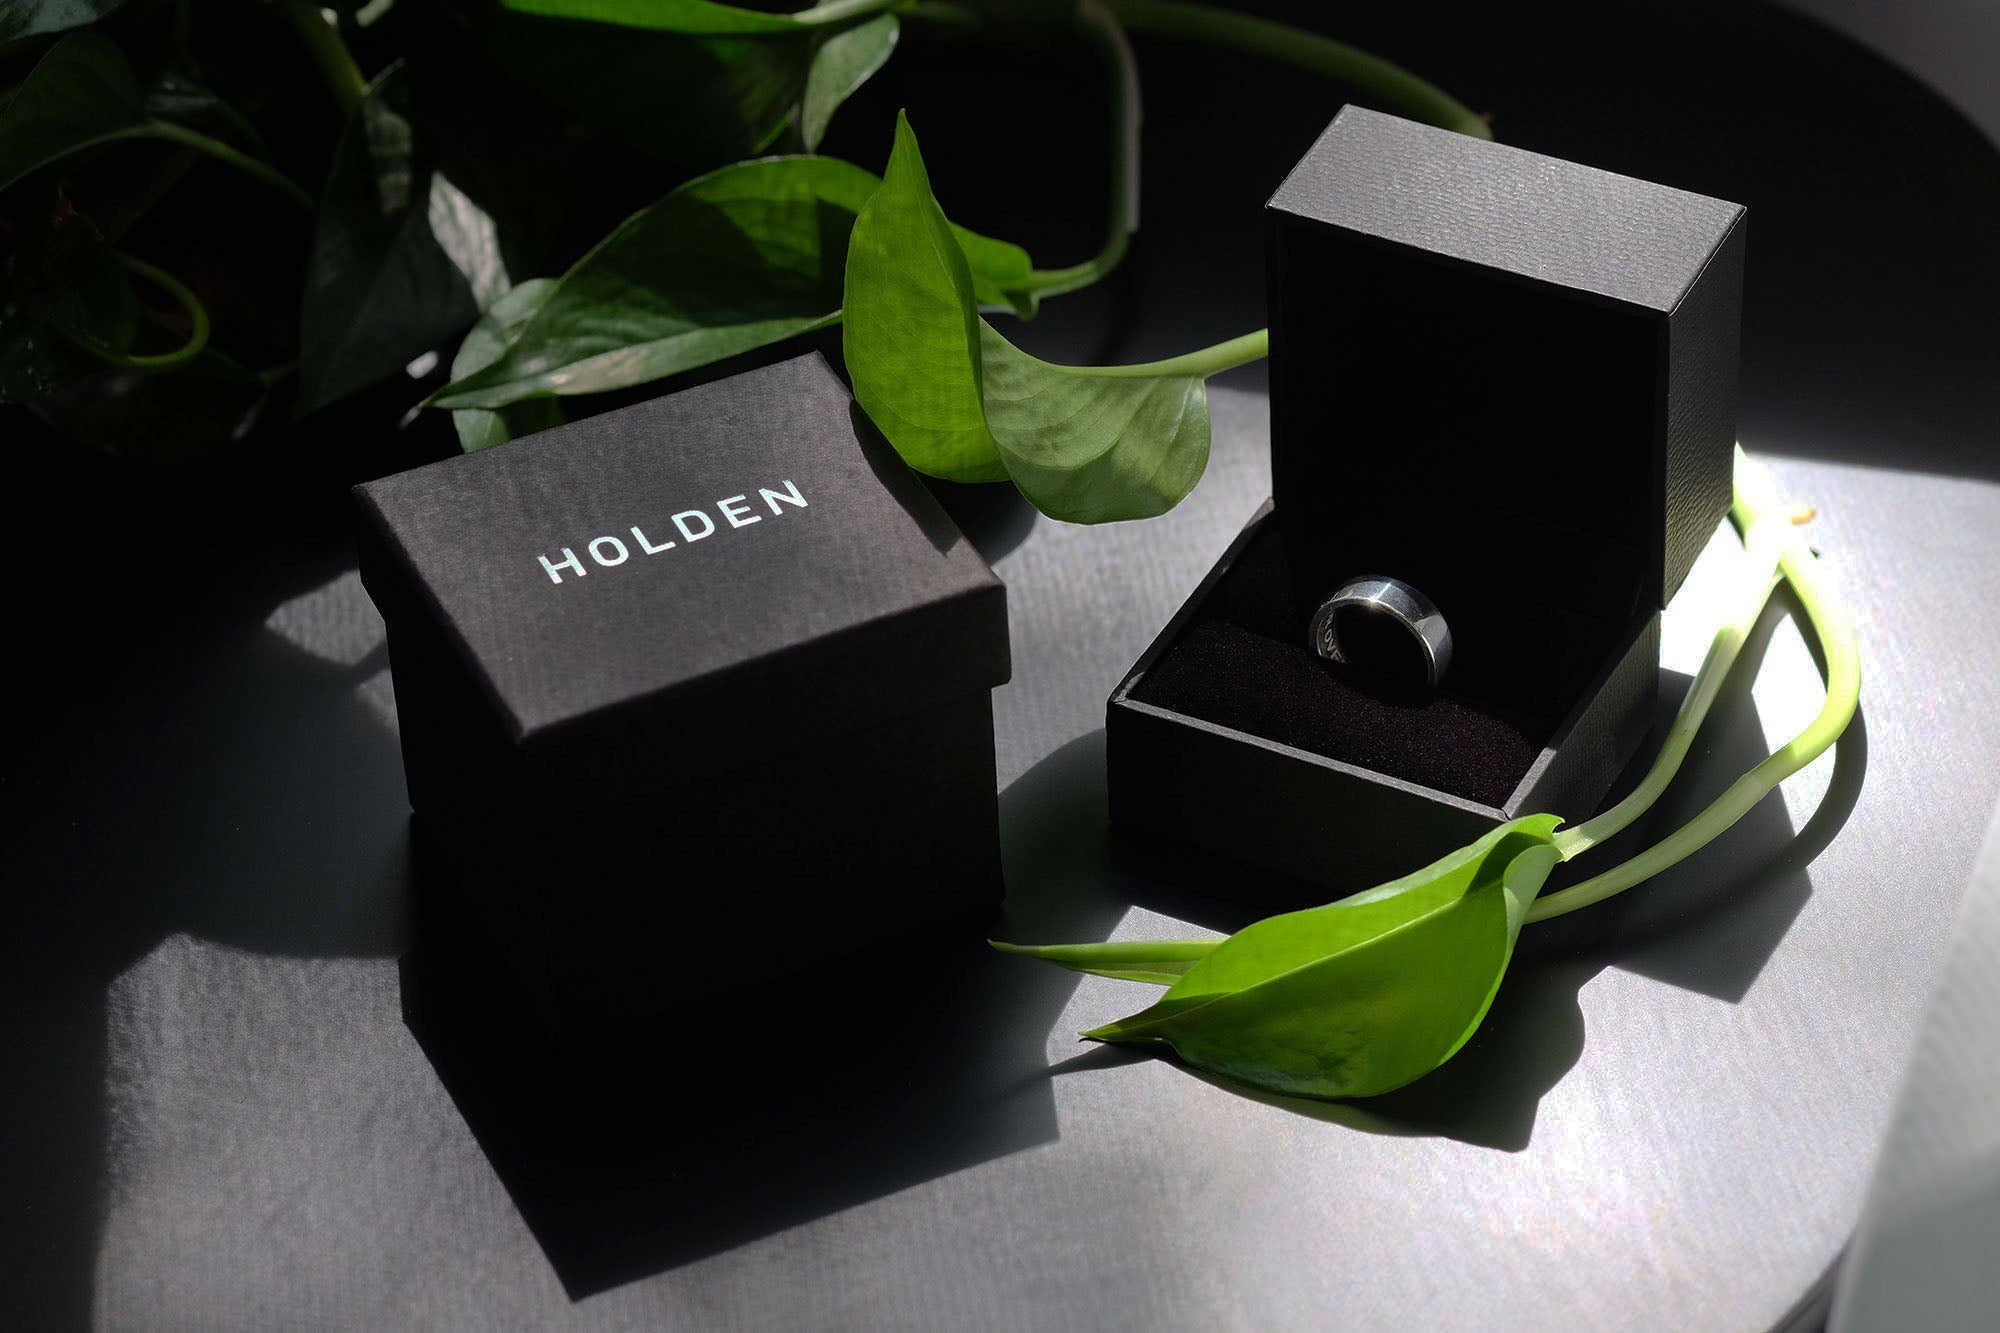 HOLDEN wedding band in packaging